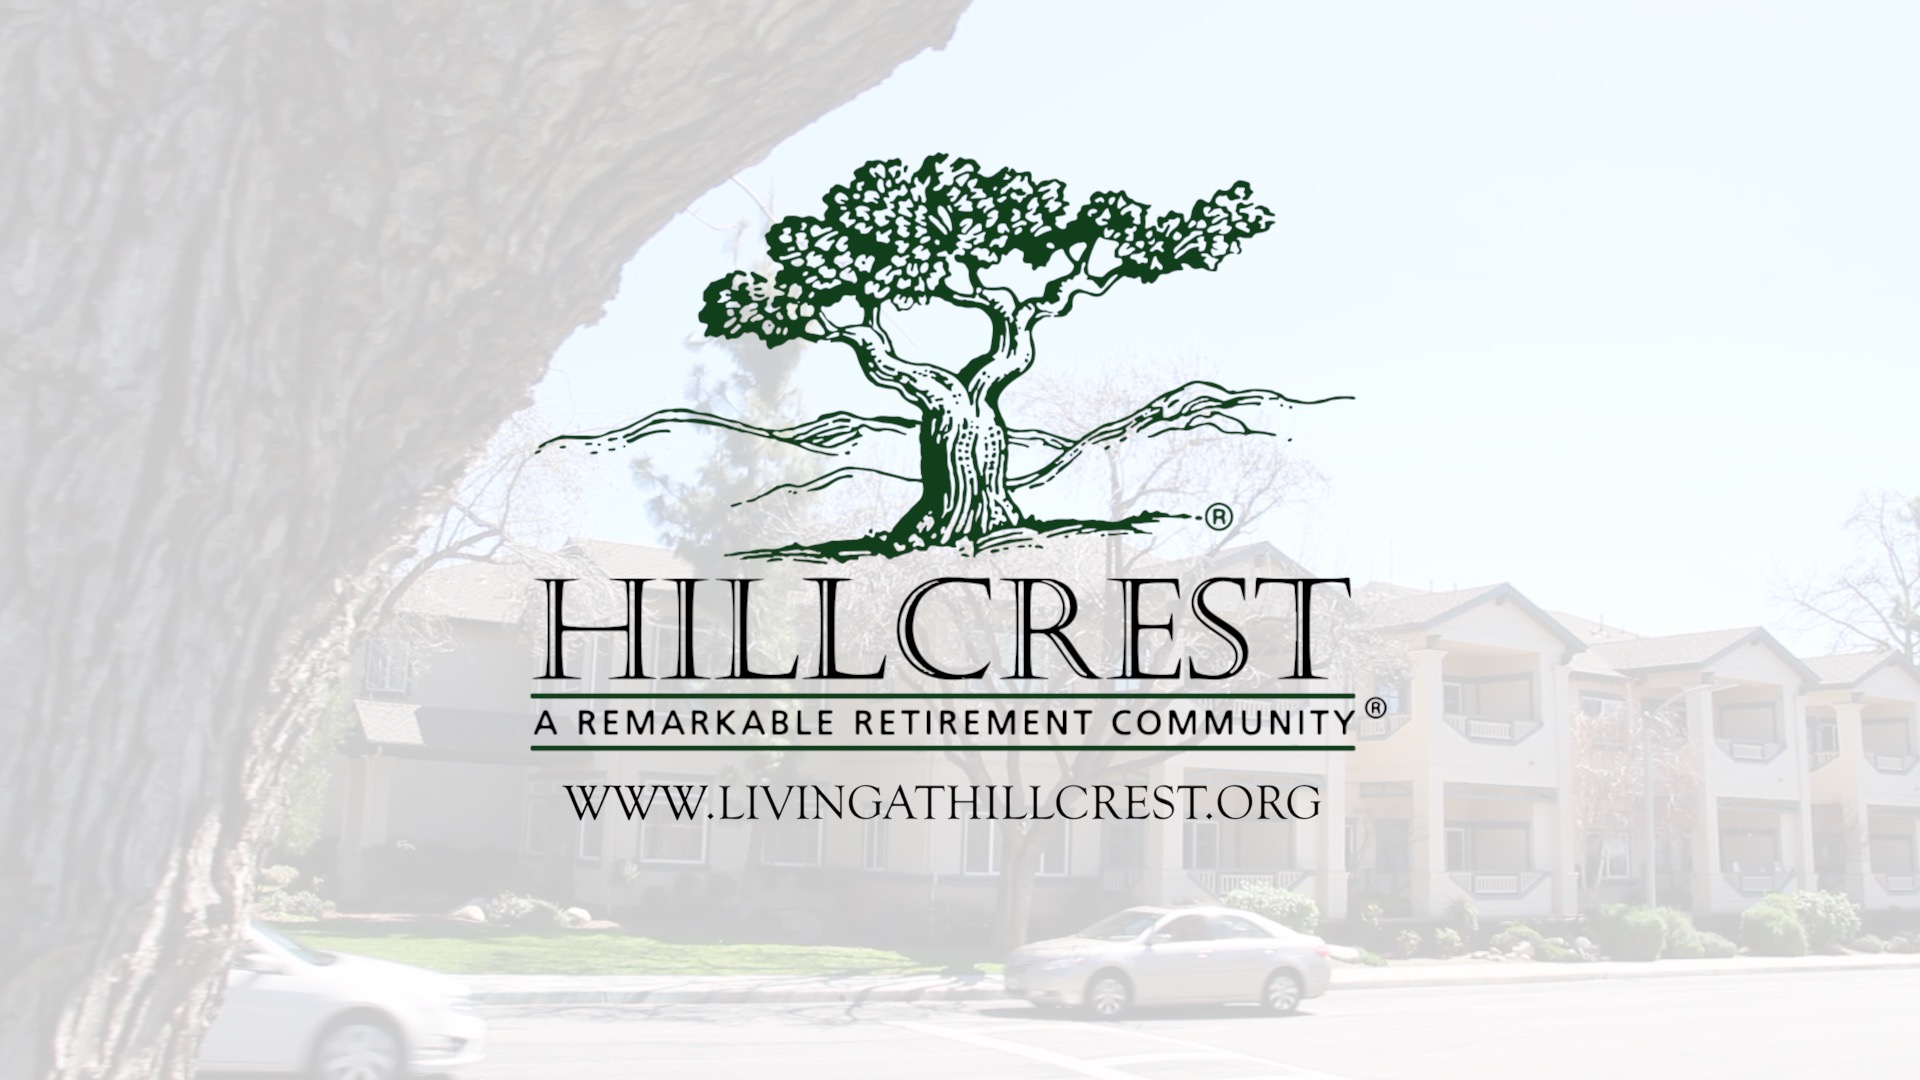 Hillcrest – A Remarkable Retirement Community